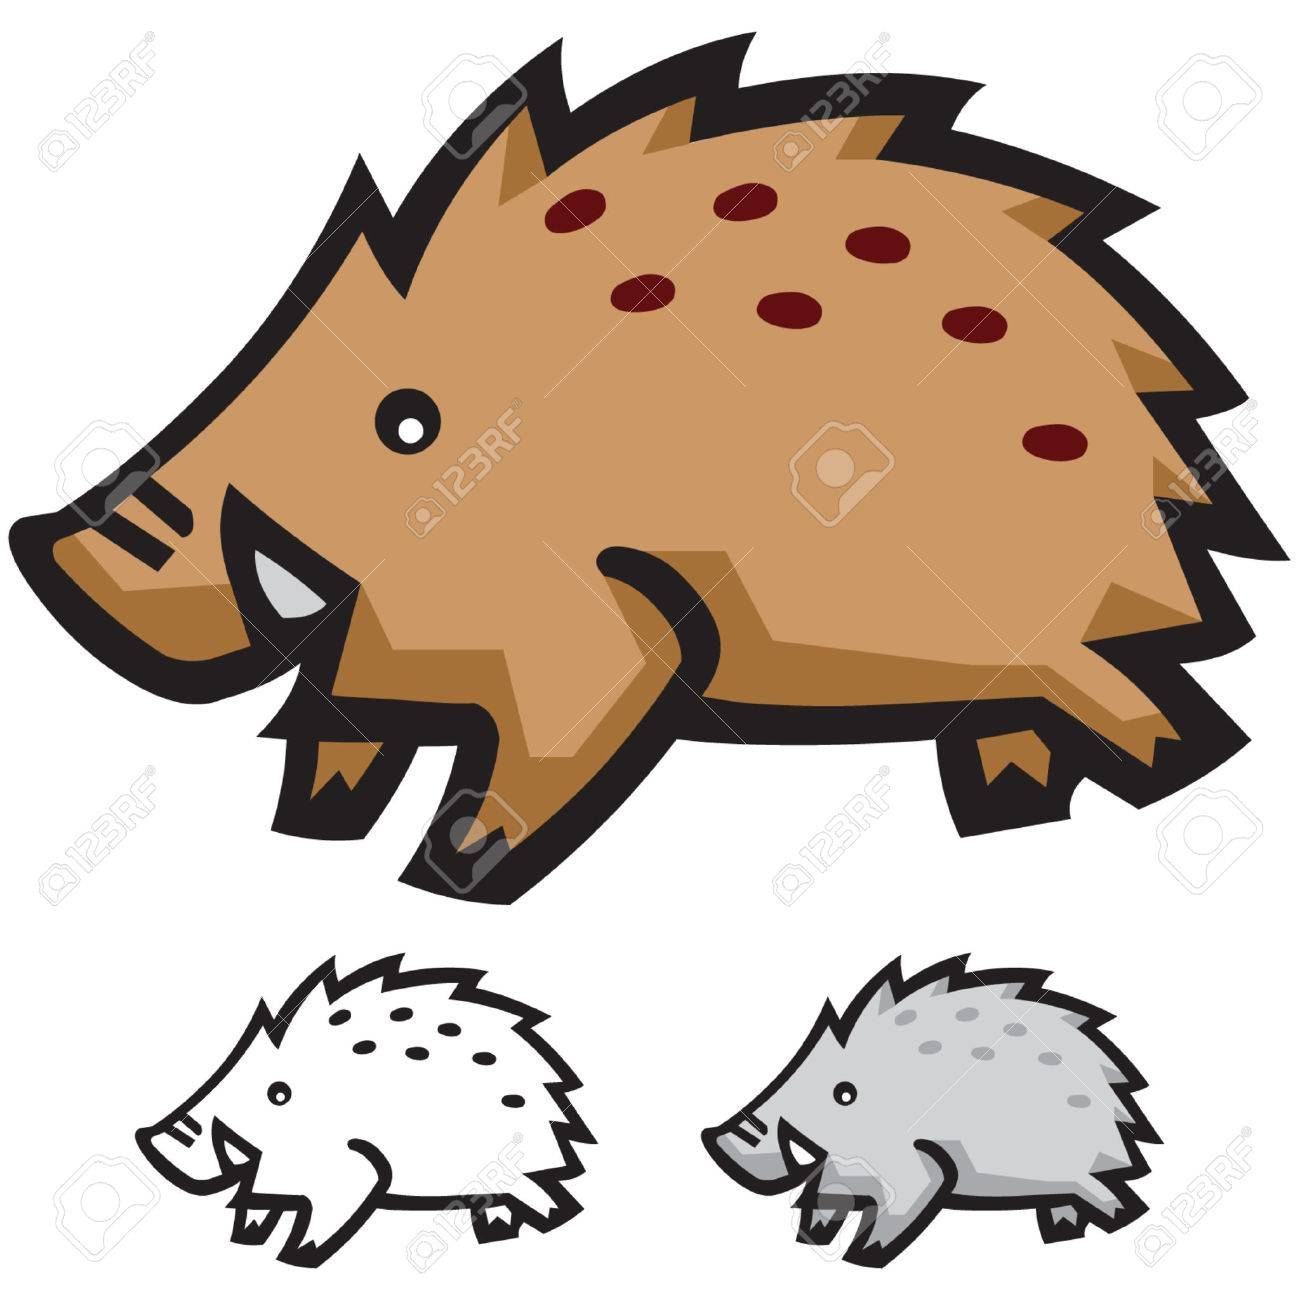 Pig Stock Vector - 2332038